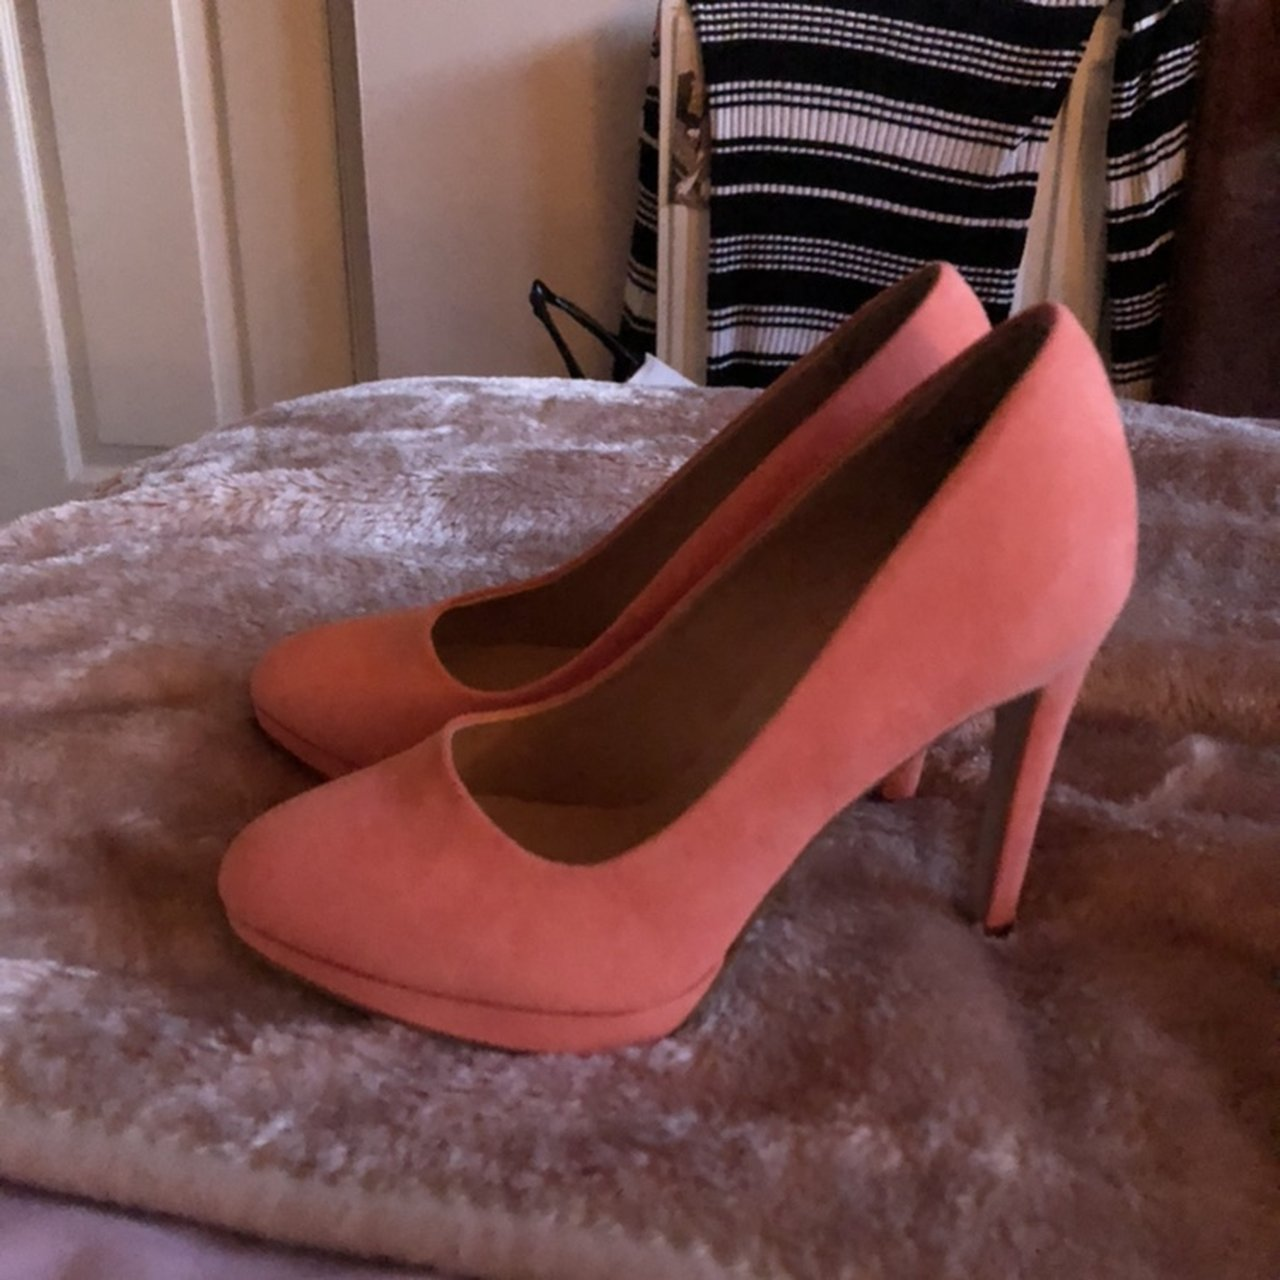 9f50659ad51 Coral   peach coloured high heels from new look. Uk size 3. - Depop